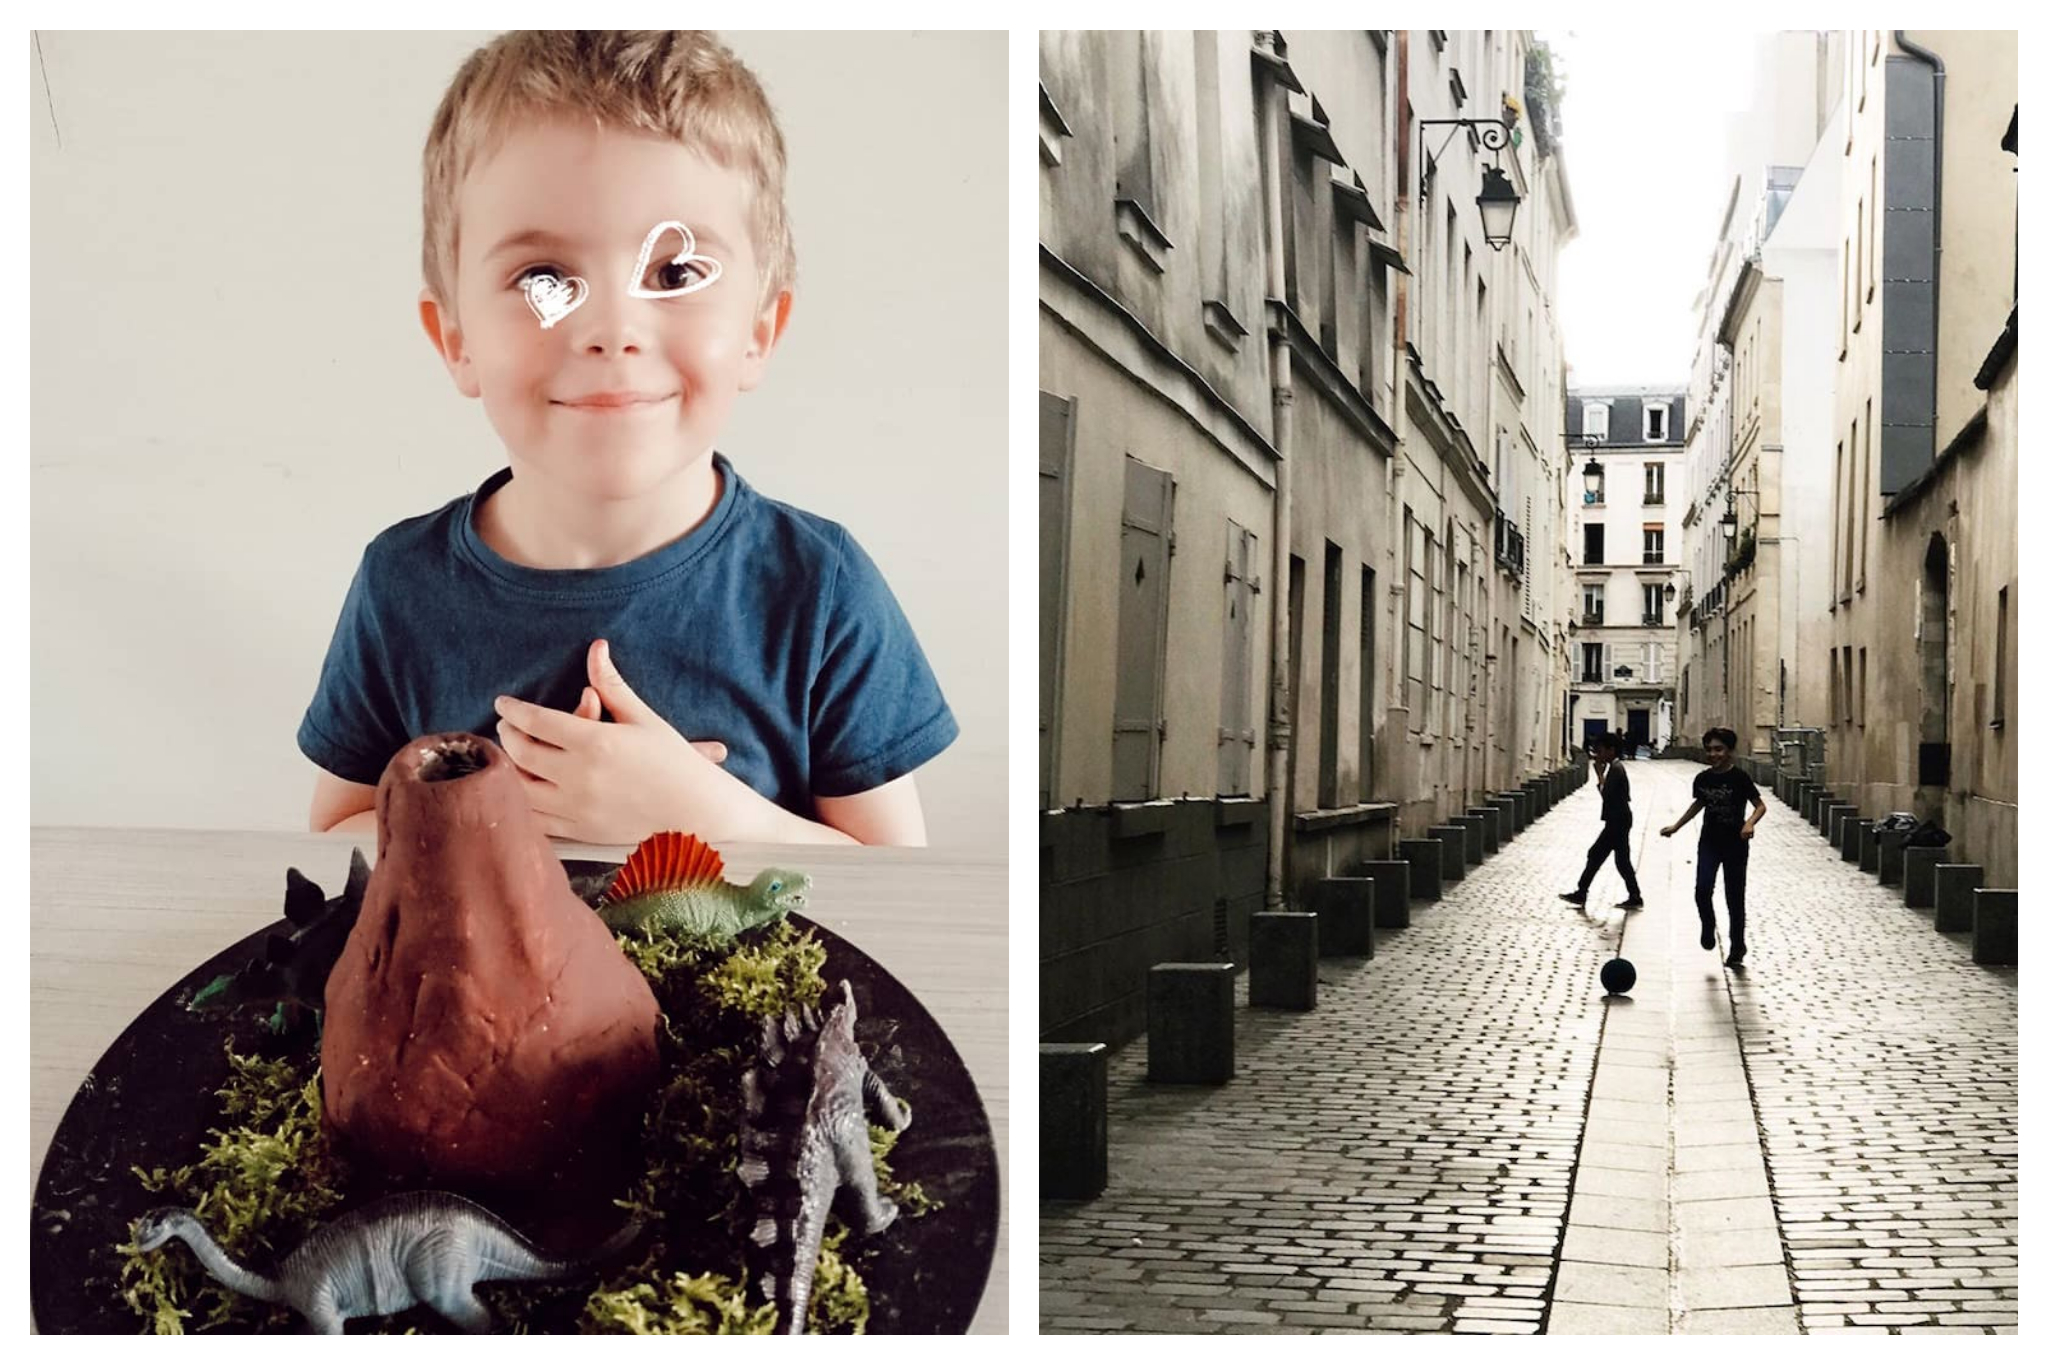 Left: A child smiles, doodles of hearts drawn in white over his face, Right: Two children play a game of soccer in an alleyway in Paris